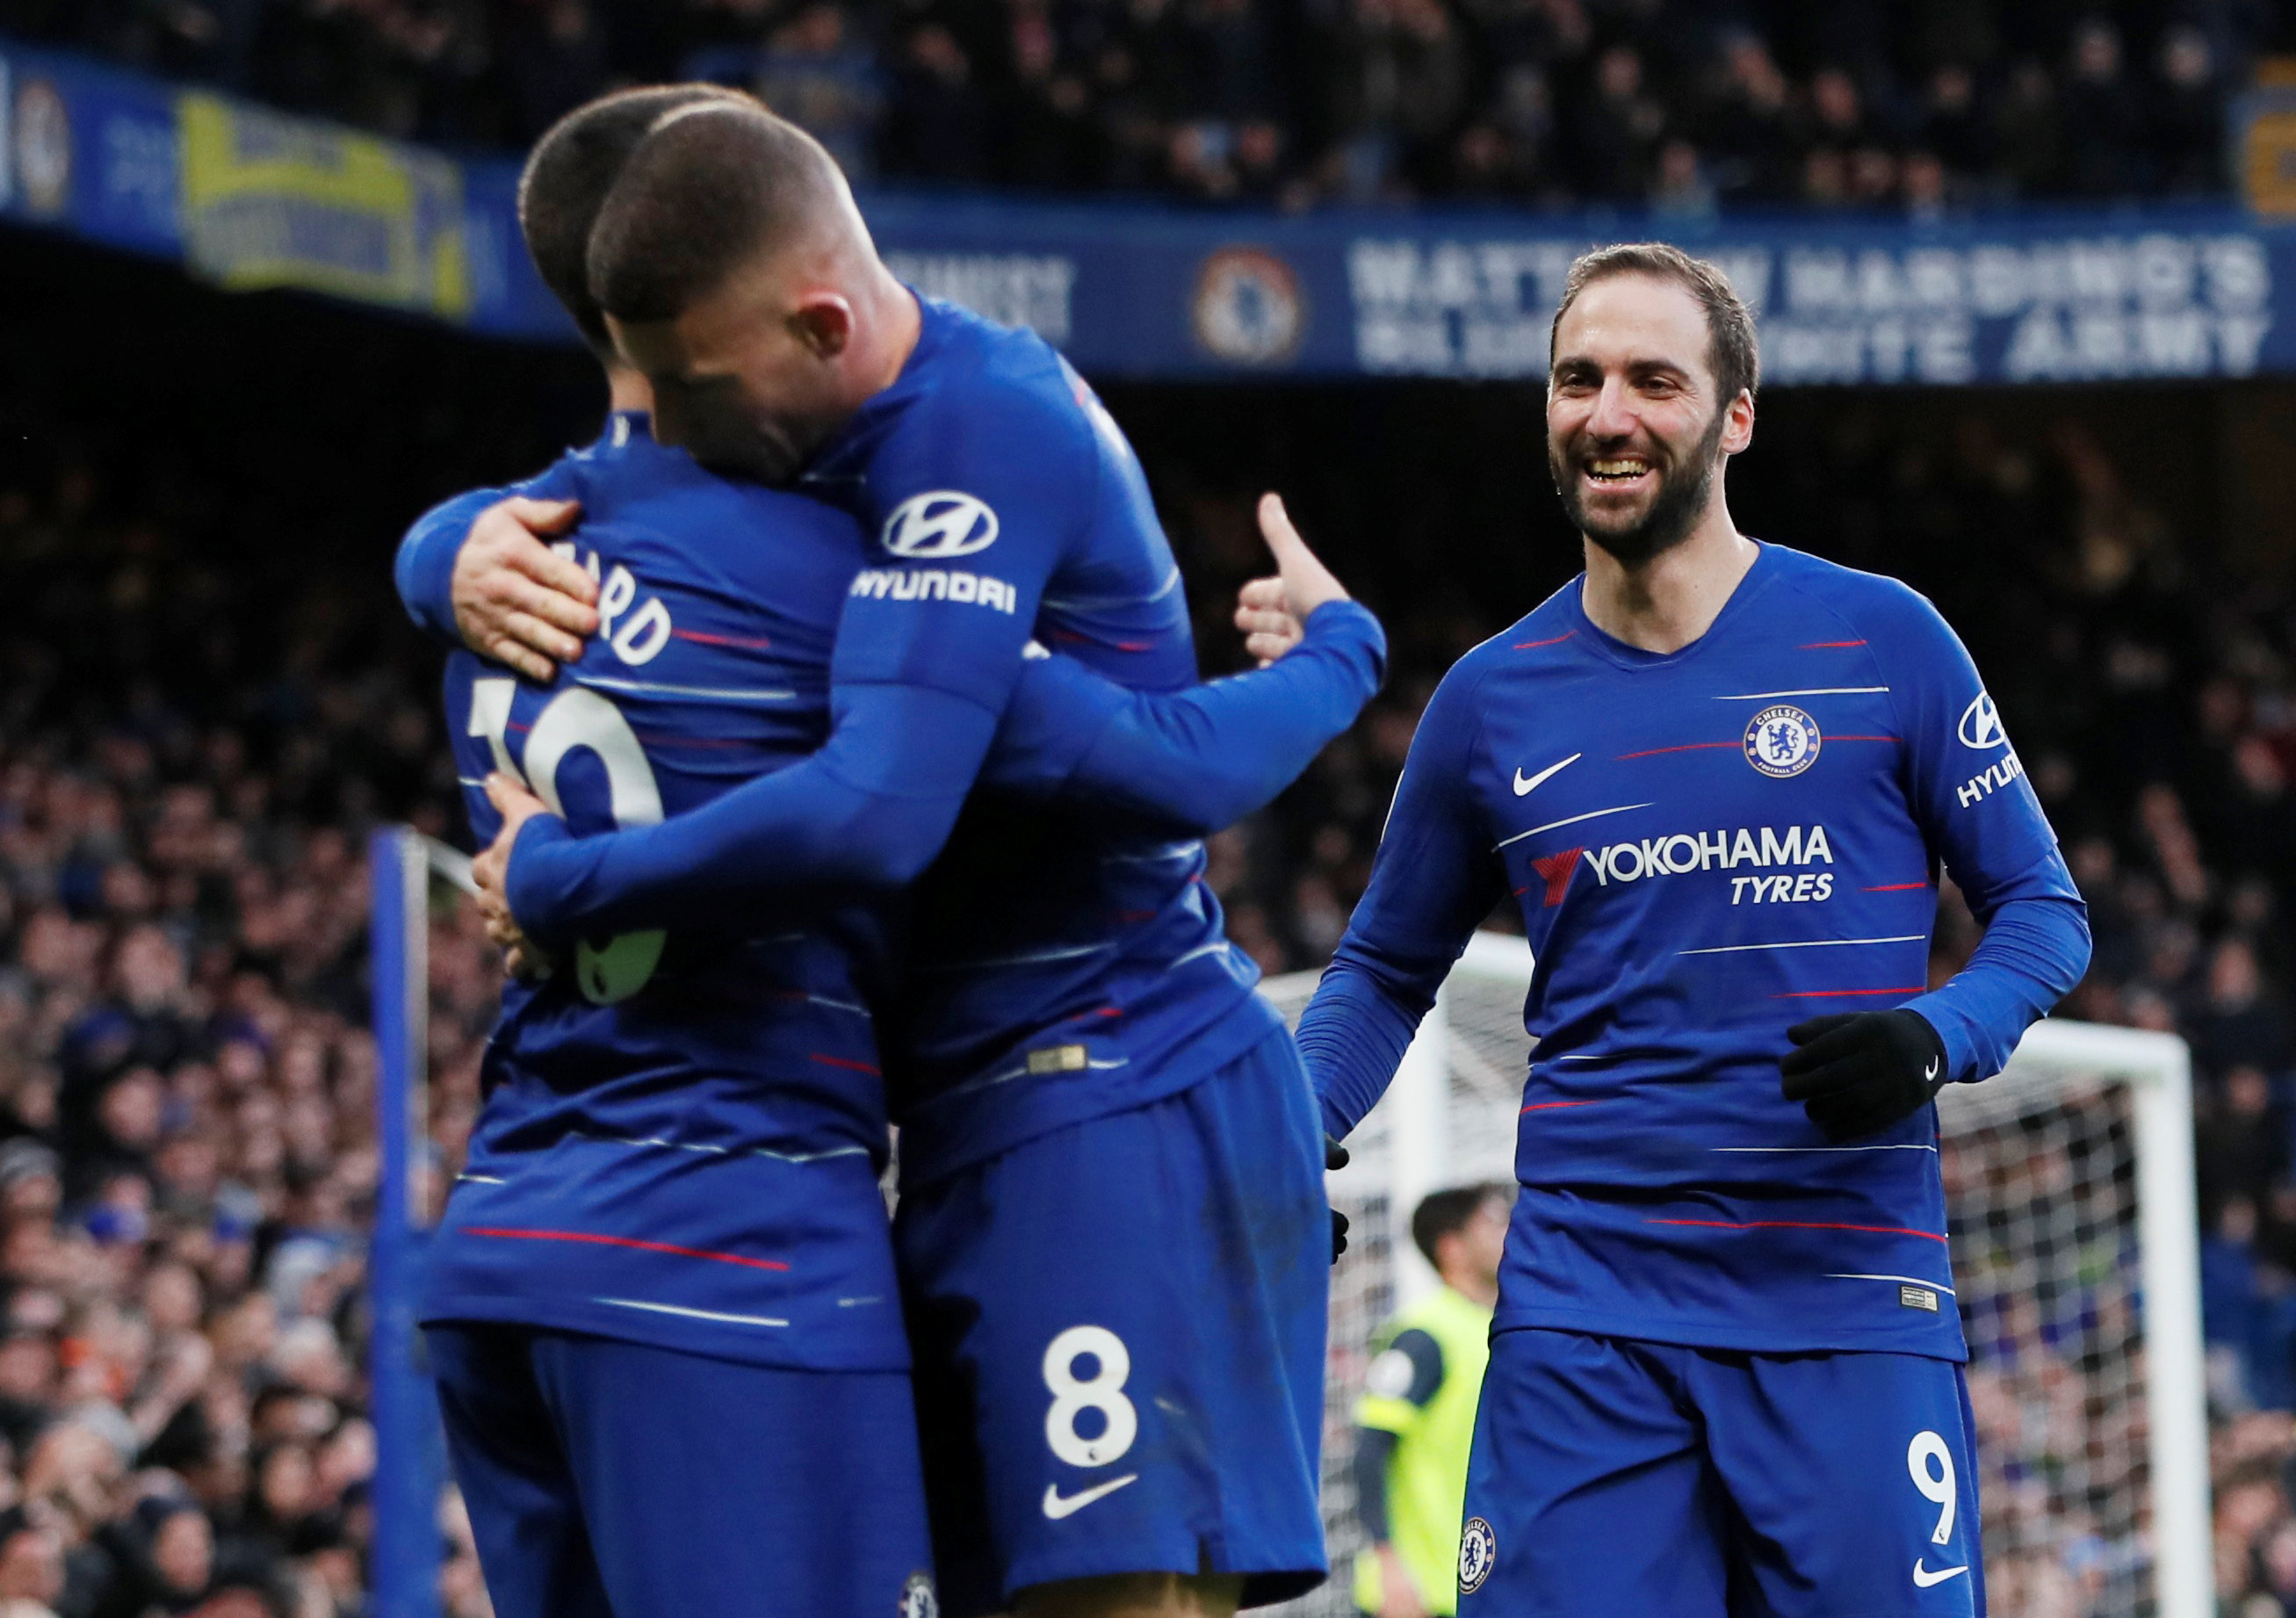 Chelsea players pictures 2019